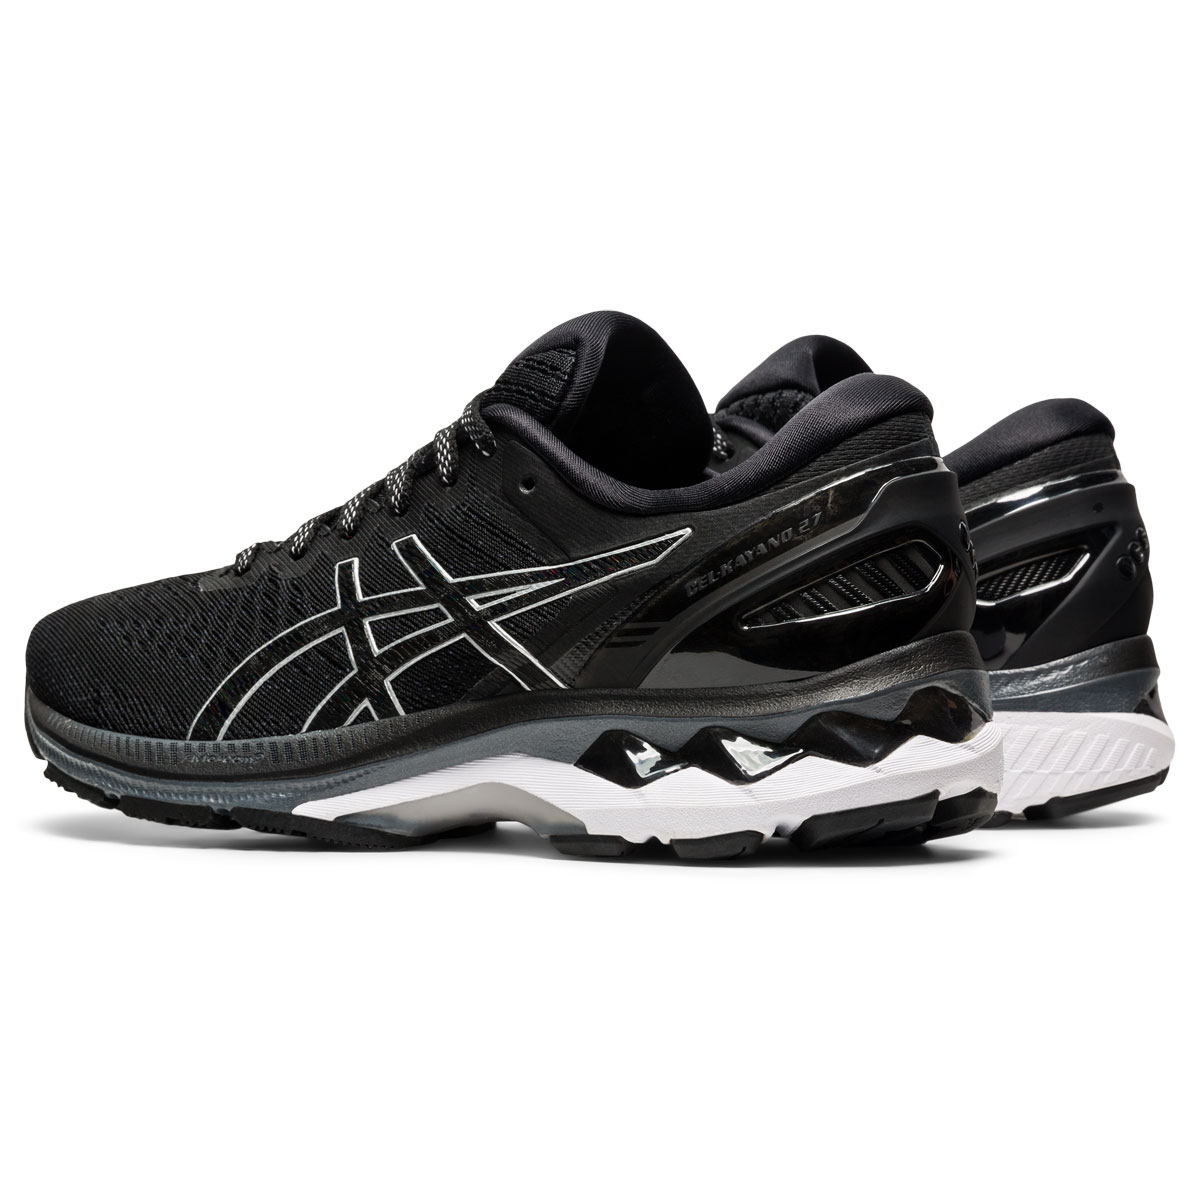 Women's Asics GEL-Kayano 27 Running Shoe - Color: Black/Pure Silv (Regular Width) - Size: 5, Black/Pure Silv, large, image 4